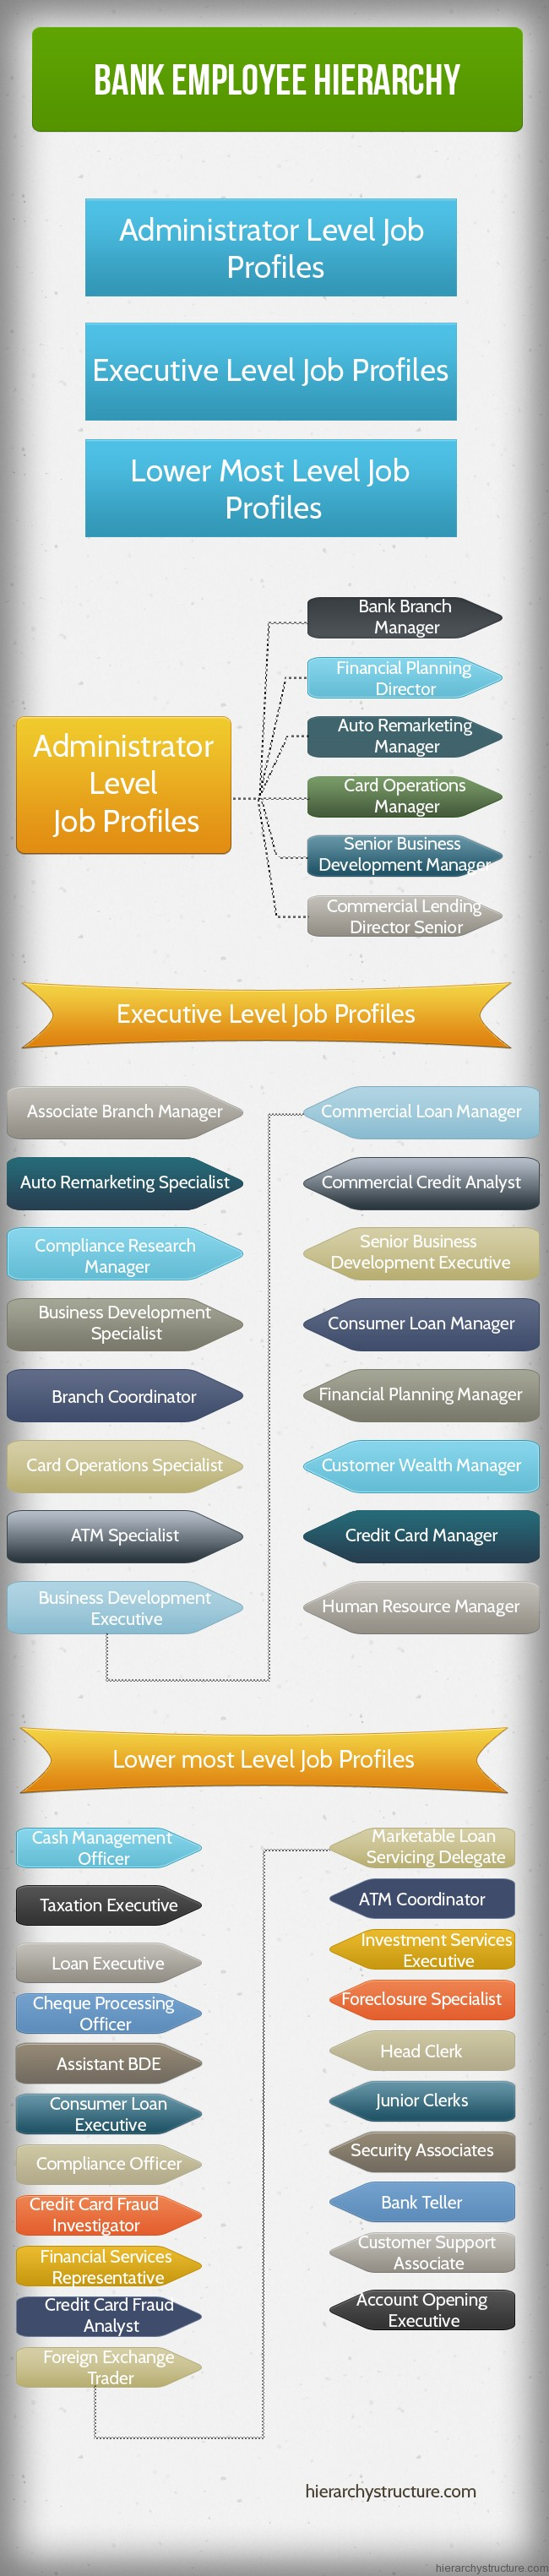 bank employee hierarchy chart